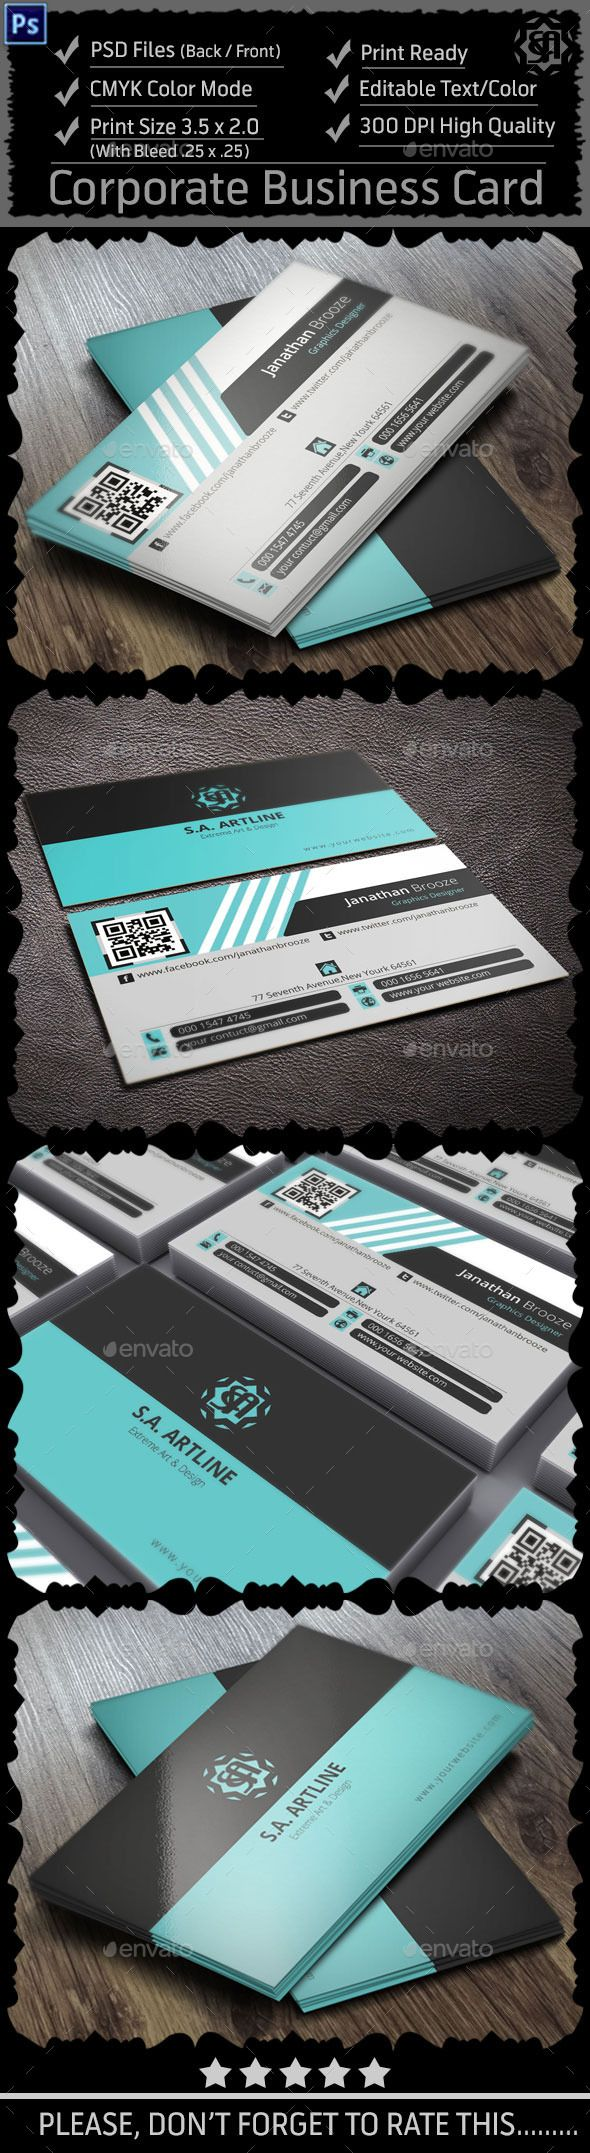 2226 best business card images on Pinterest | Business cards ...